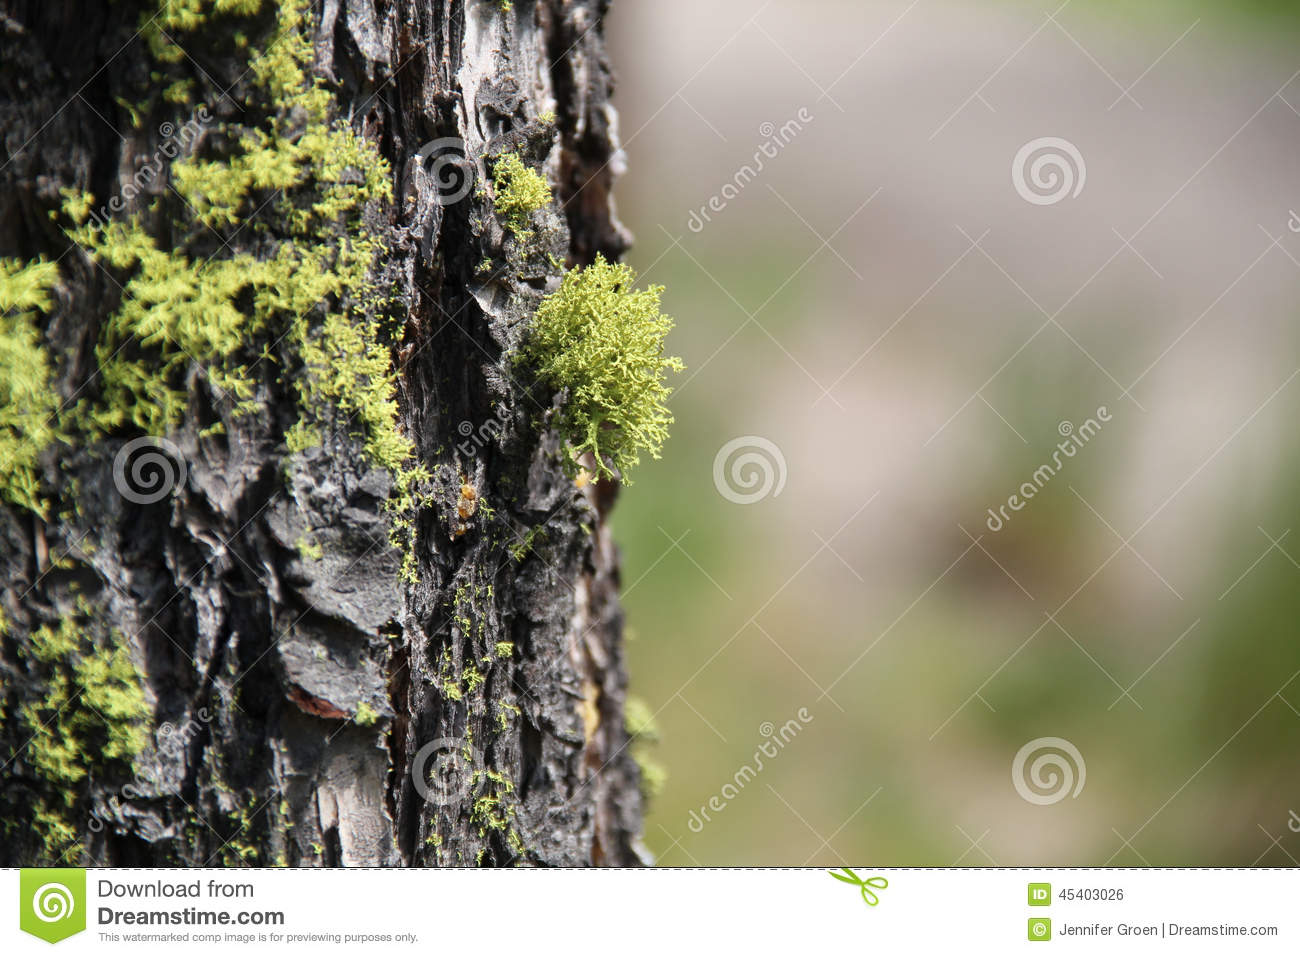 Green Moss on a Tree Trunk 3